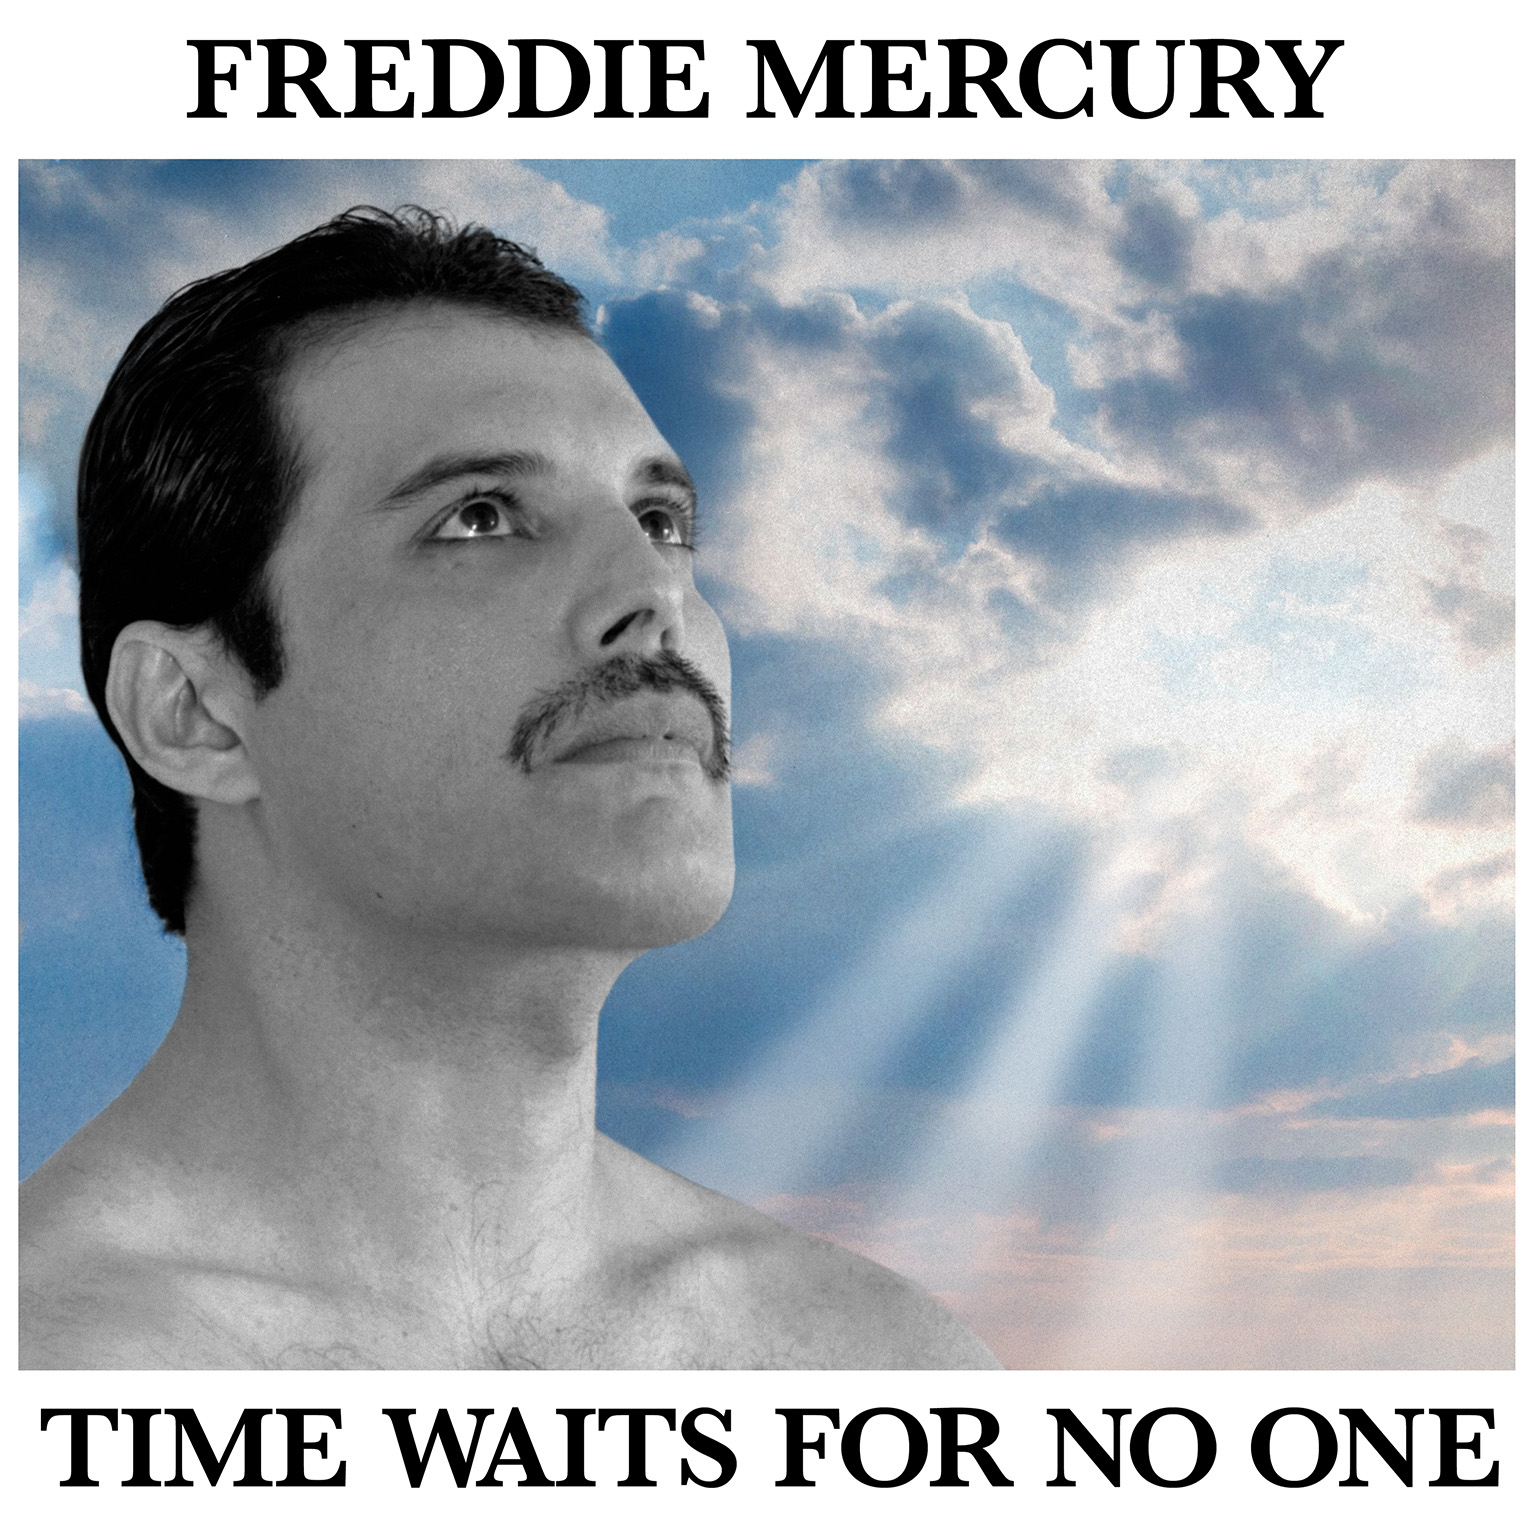 Freddie Mercury Time Waits For No One Cover Art